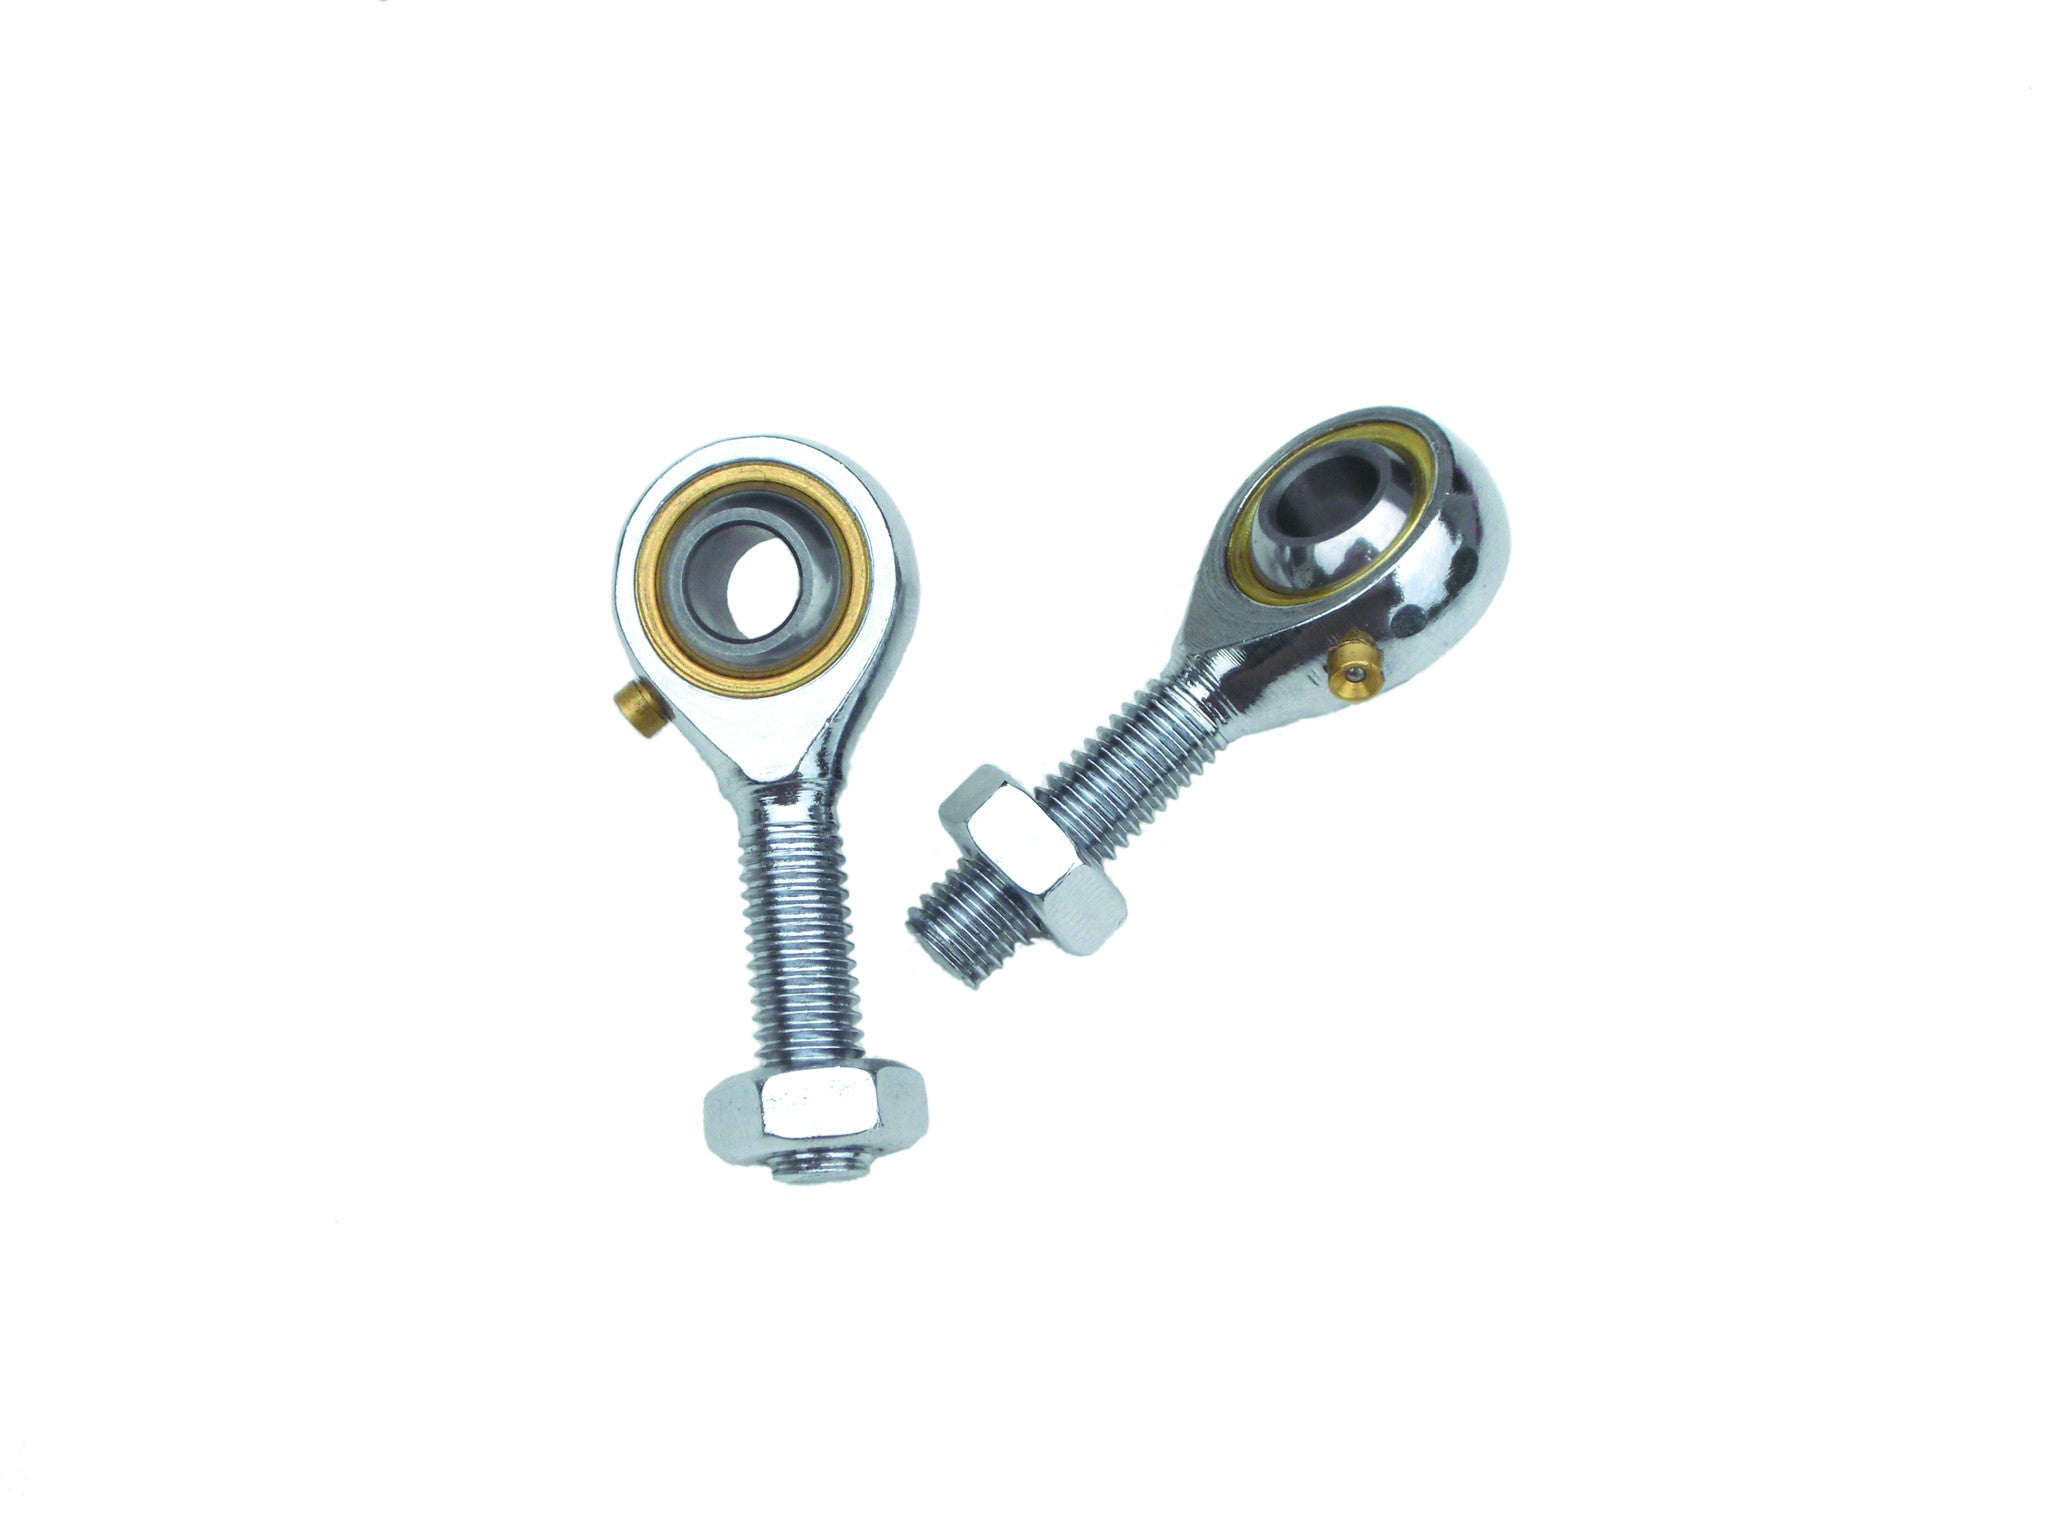 tie-rod-end-with-jam-nut-8mm-left-handed